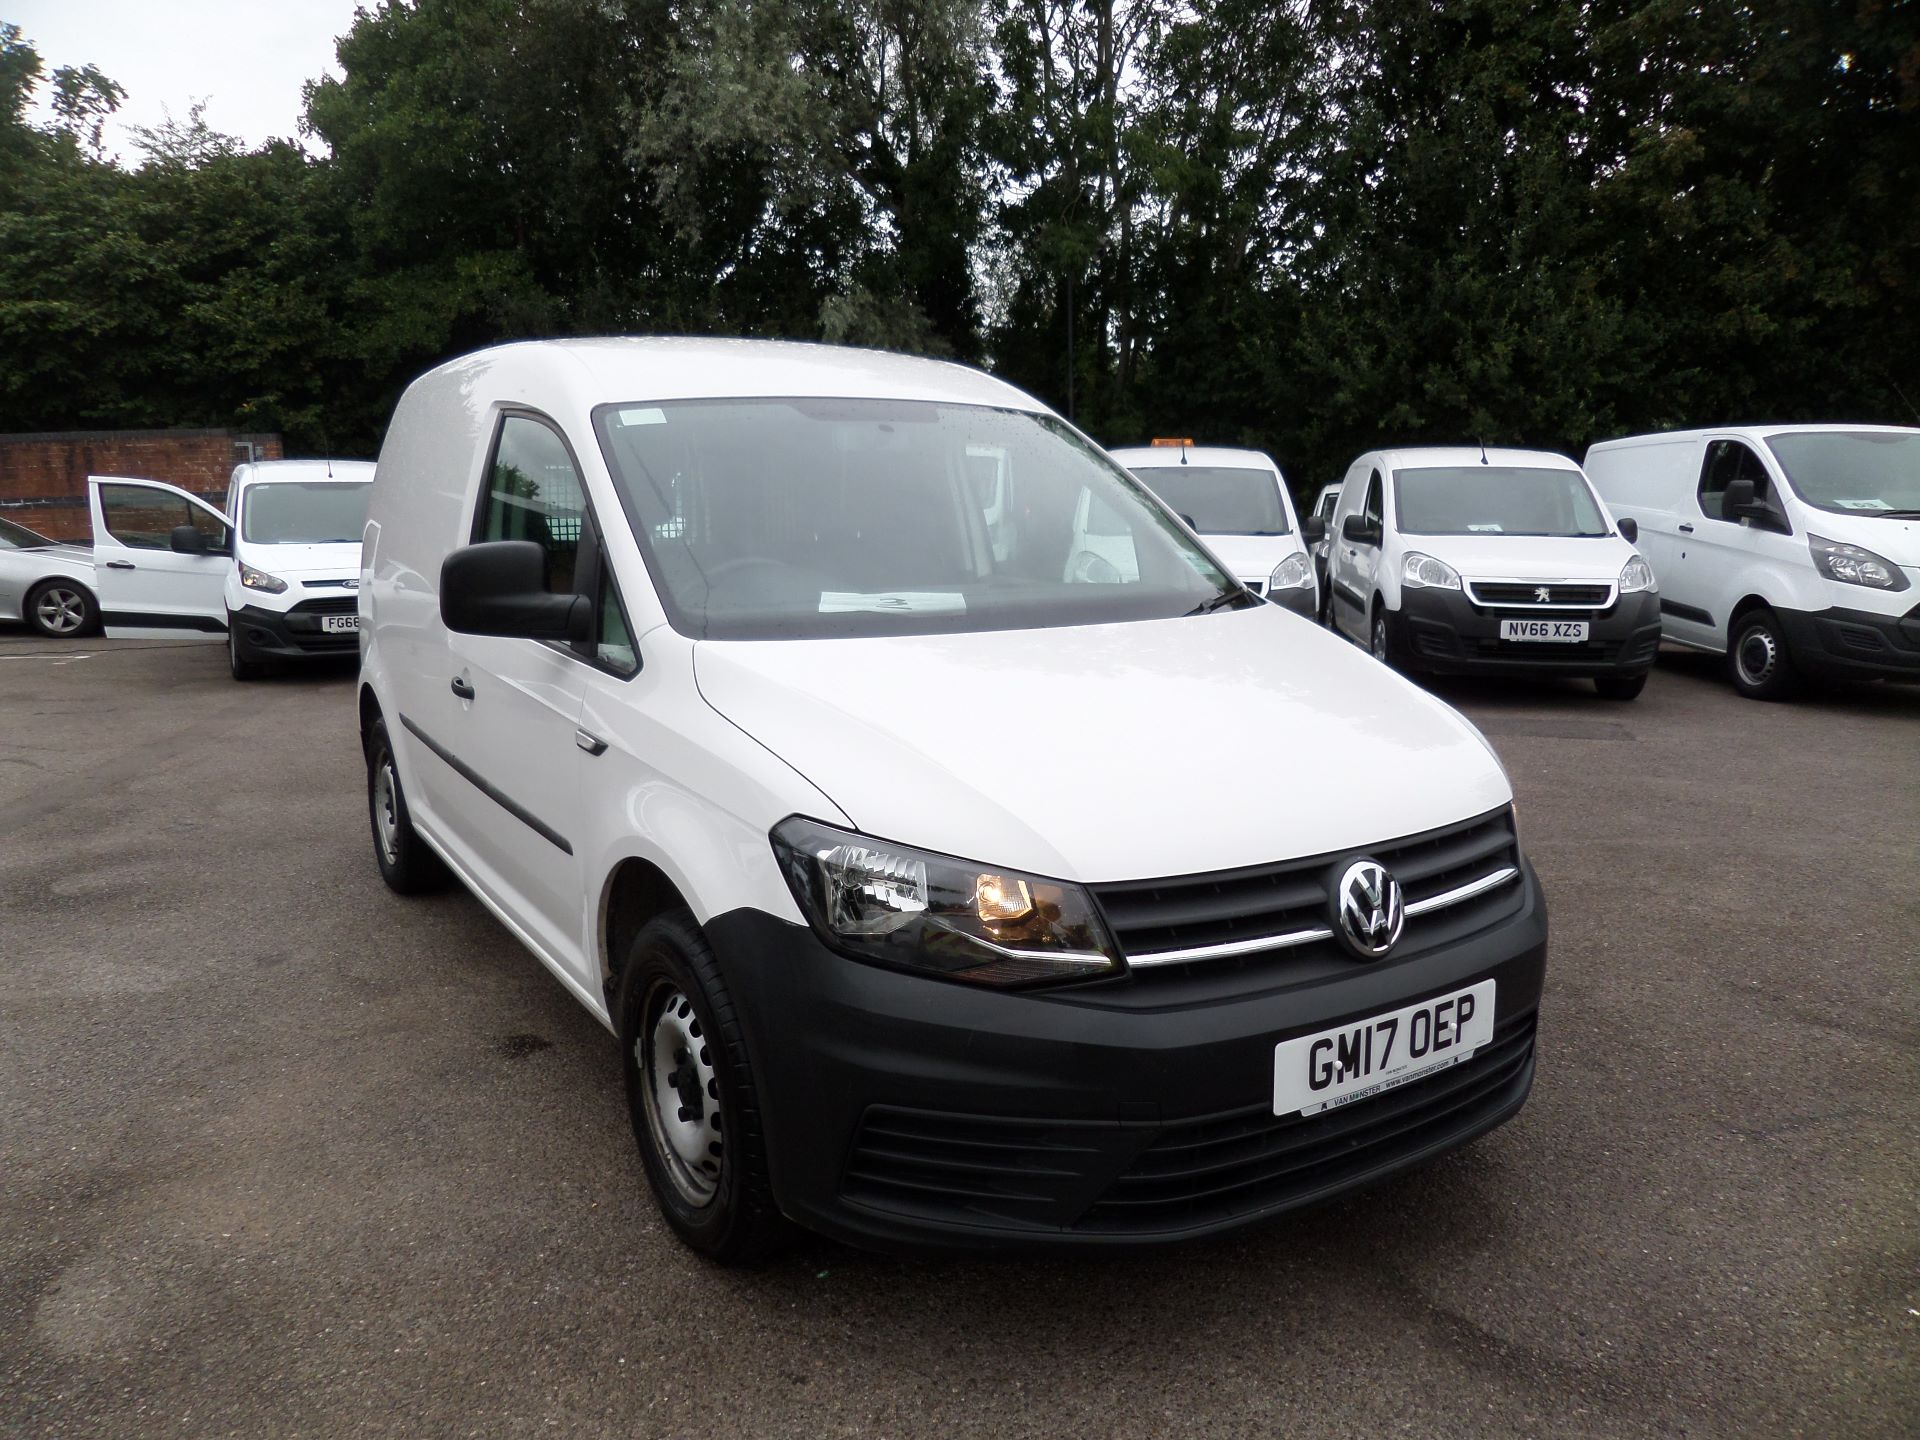 2017 Volkswagen Caddy 2.0 Tdi Bluemotion Tech 102Ps Startline Van Euro 6 (GM17OEP)